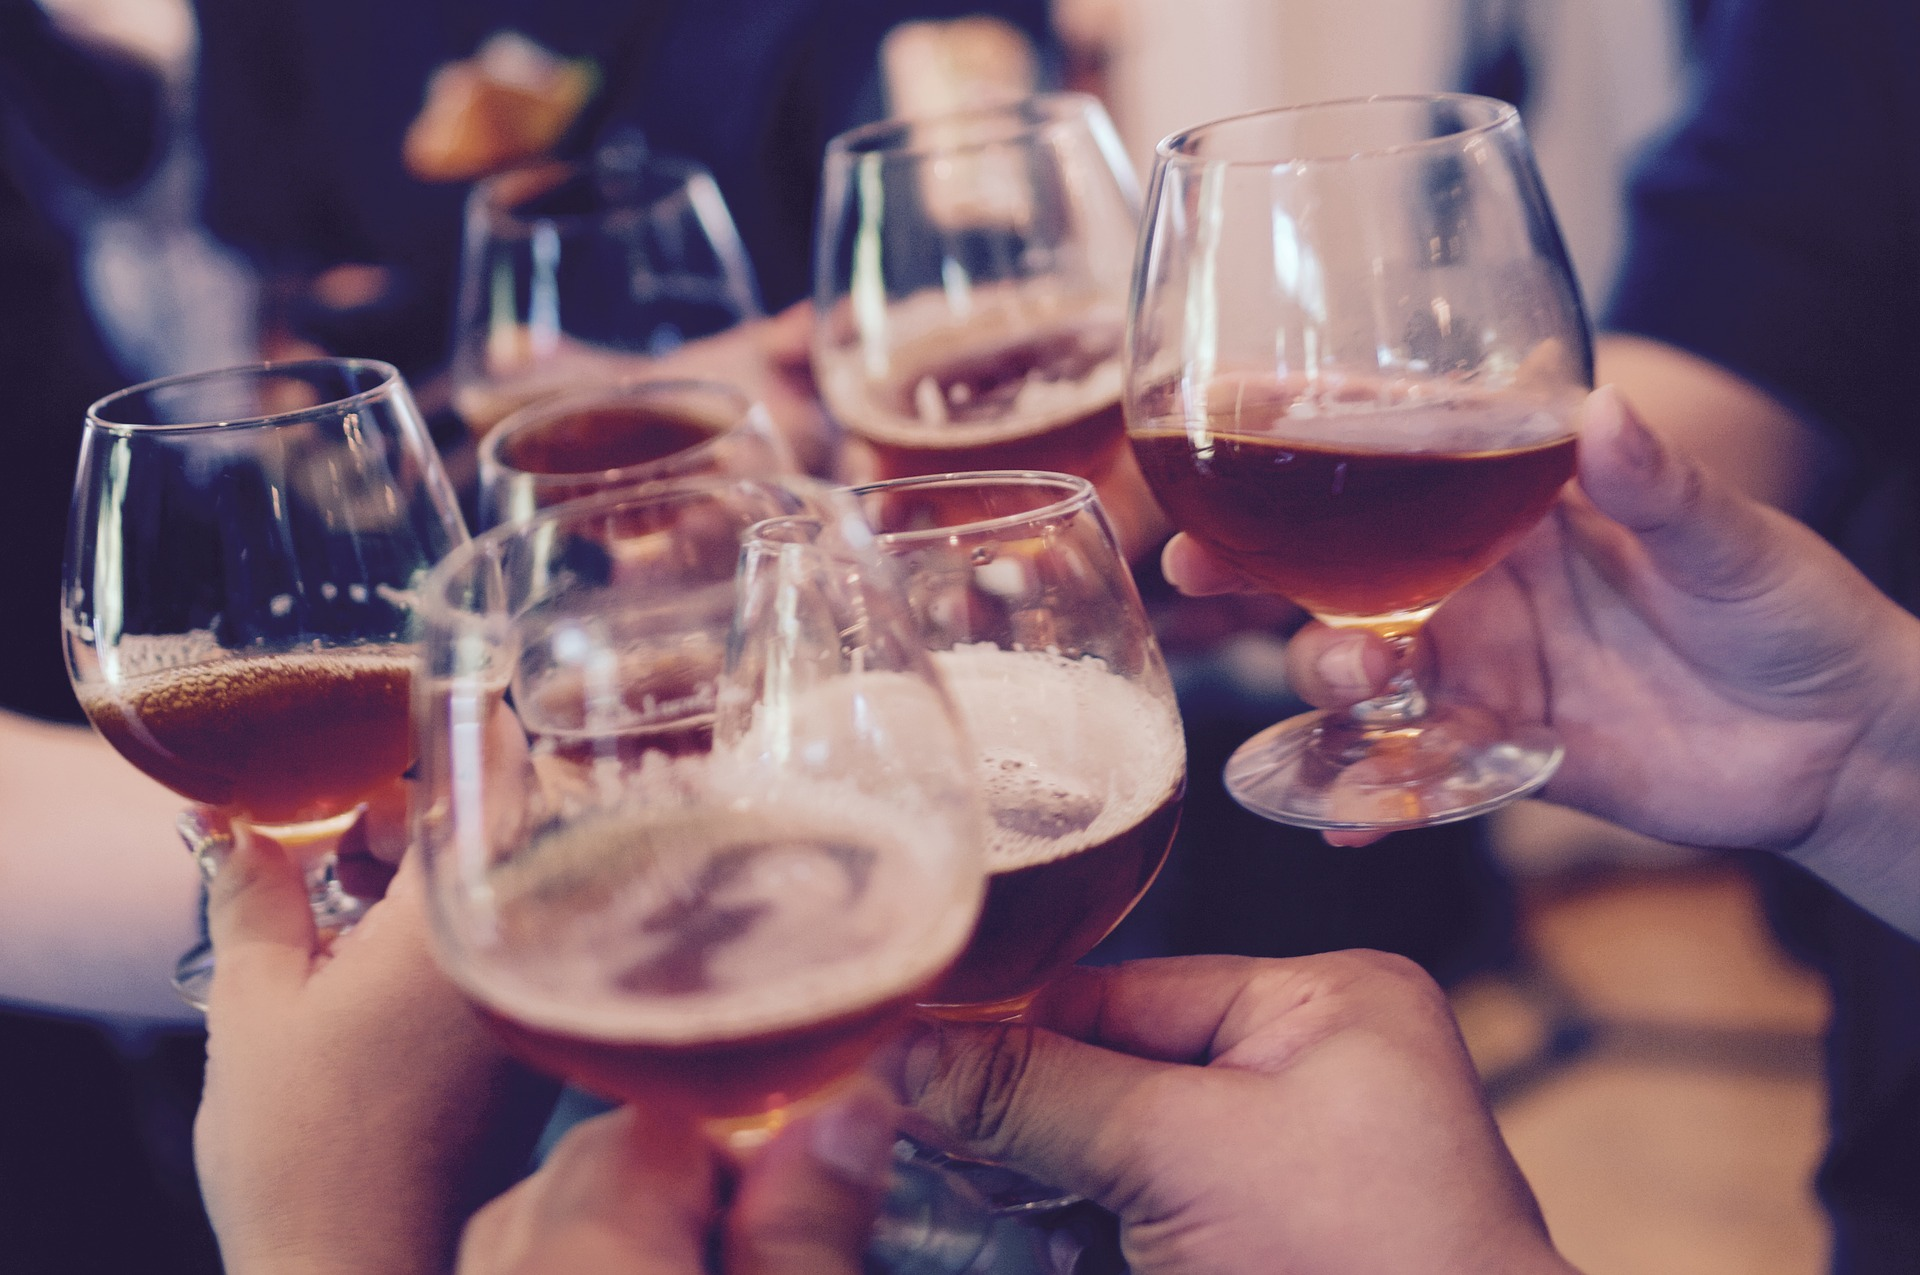 Brews & News: Portage and Main Discussion